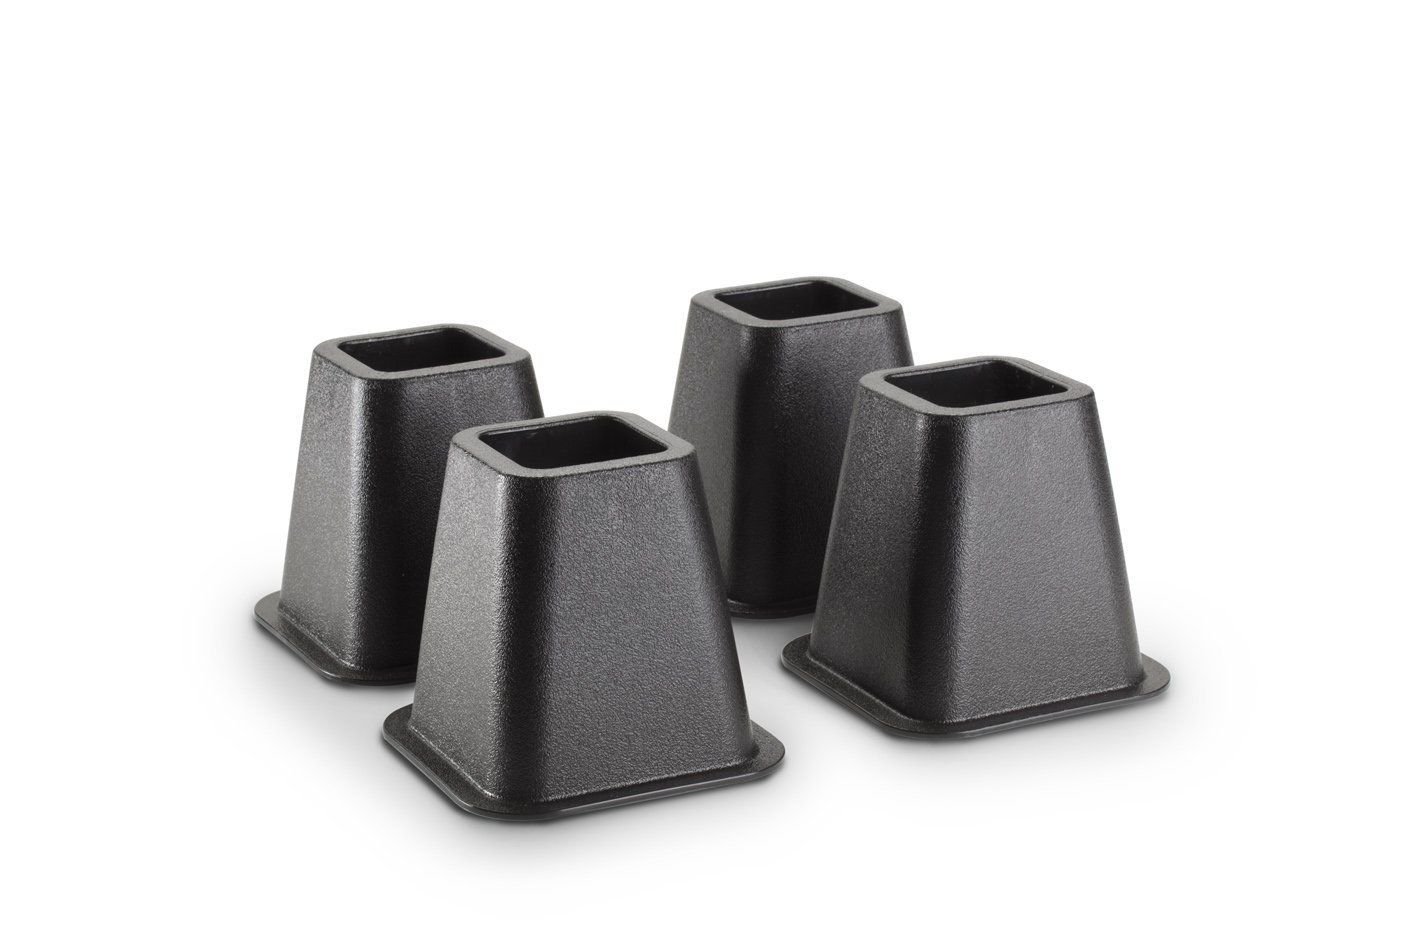 Generic YC-US2-151102-250 <8&28781> ck, Newk Bed Riser Black Bed Home Collection Risers, 5 to 6-inch 4-pack, New Home Collec